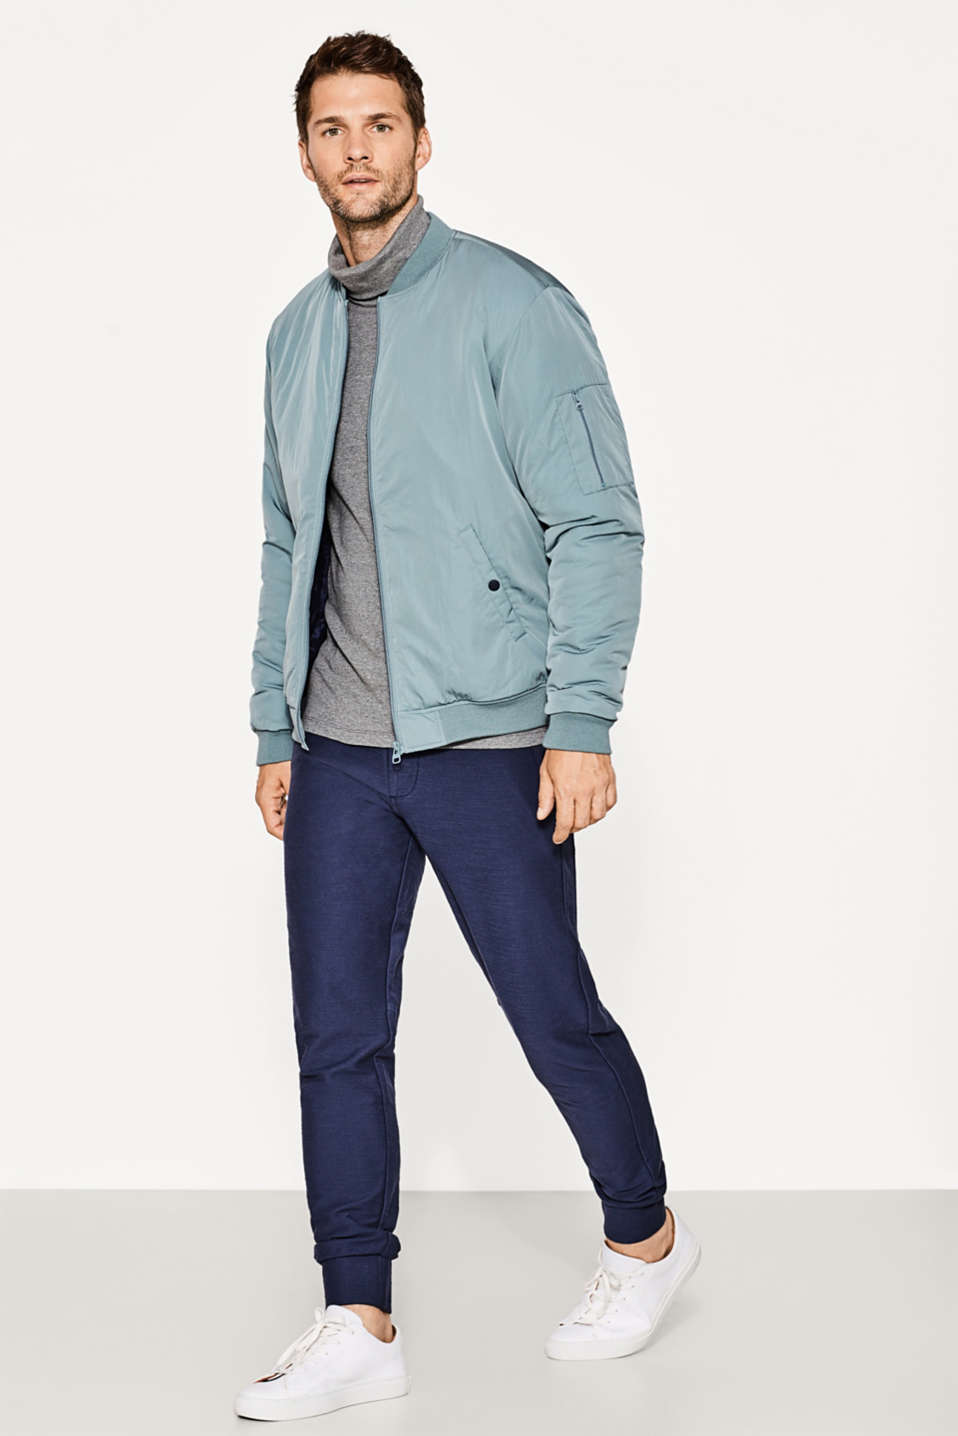 Urban bomber jacket with padding